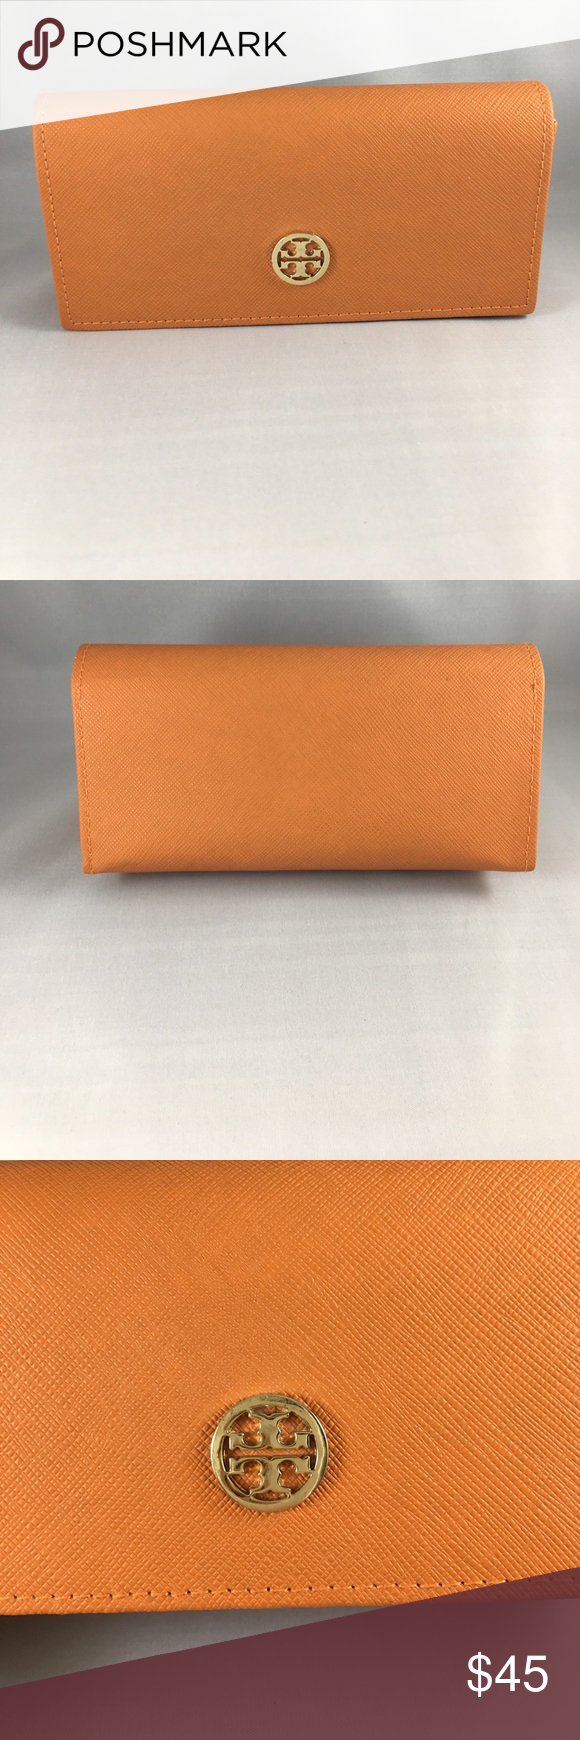 586c281007b Tory Burch Eyeglasses Case Luxottica Authentic never used. Tory Burch case.  Purchased at Nordstroms I have my glasses tags and original information ...